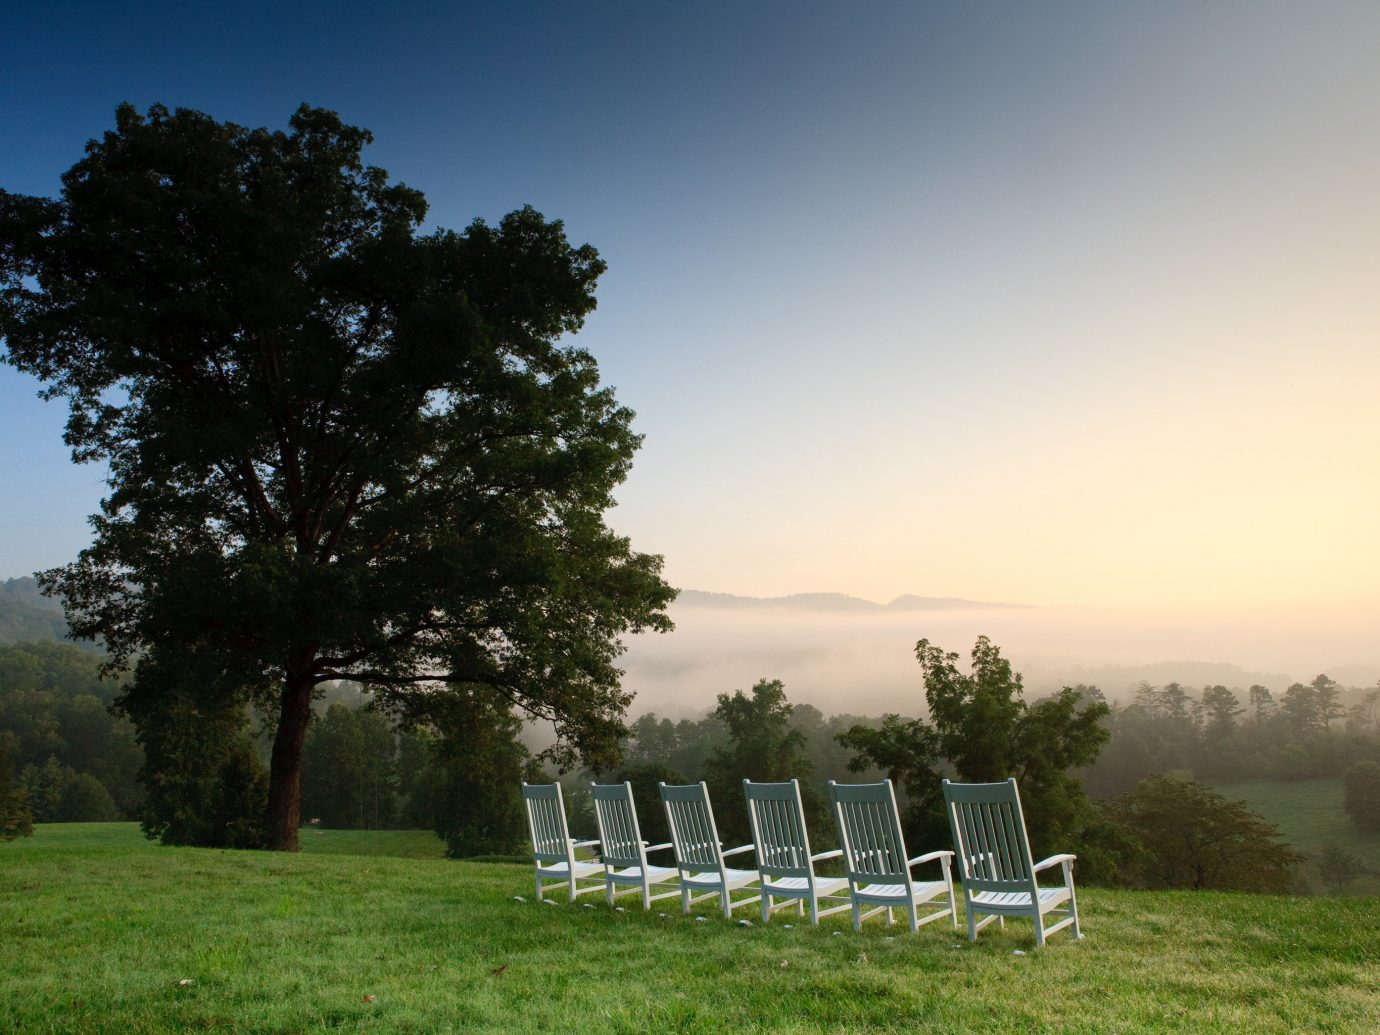 Hotels outdoor sky tree grass Nature field atmospheric phenomenon pasture ecosystem chair meadow morning seat woody plant rural area hill landscape sunlight flower lush